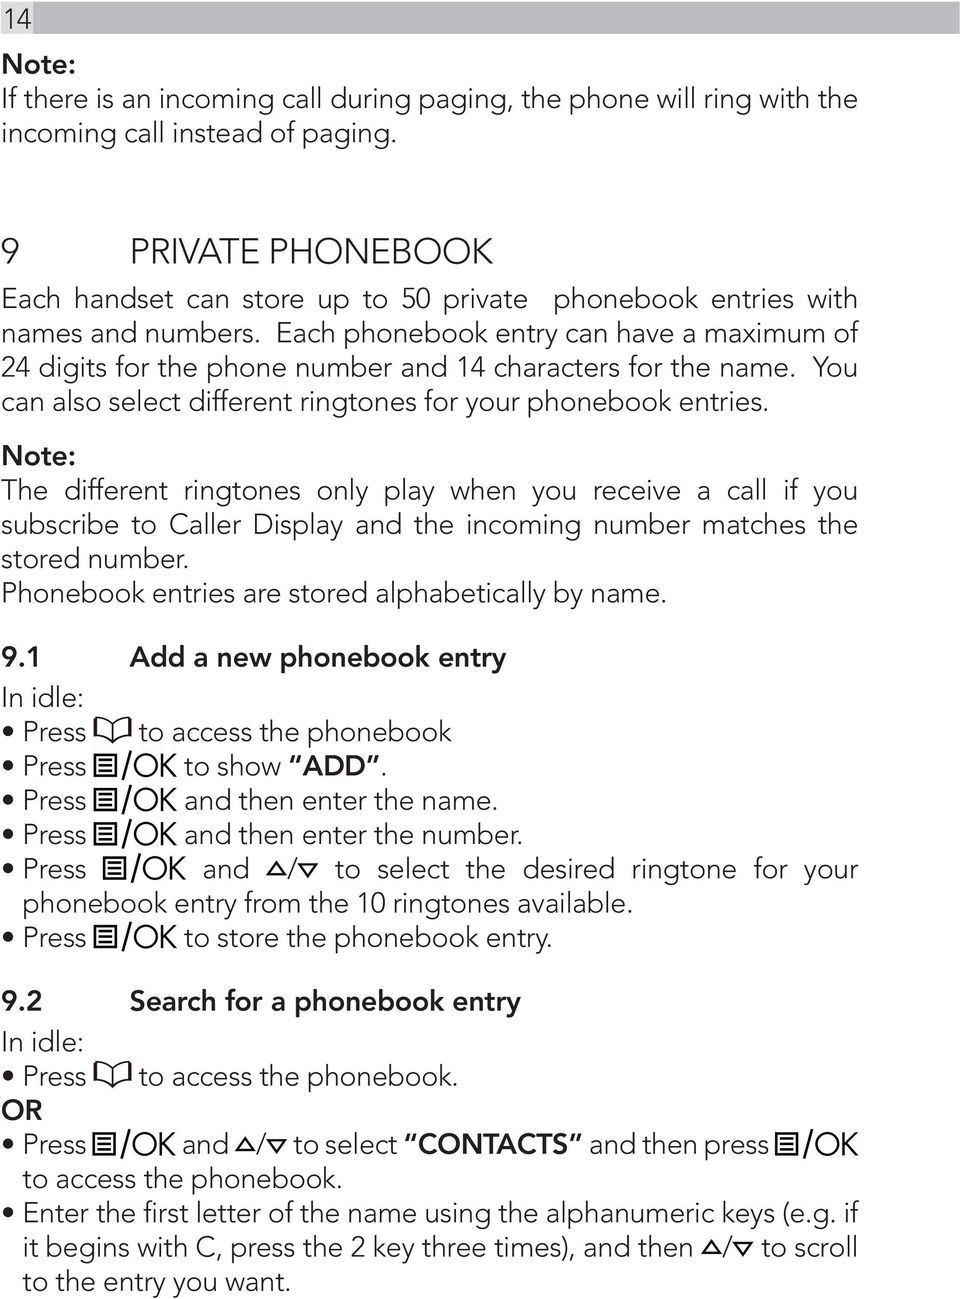 Each phonebook entry can have a maximum of 24 digits for the phone number and 14 characters for the name. You can also select different ringtones for your phonebook entries.